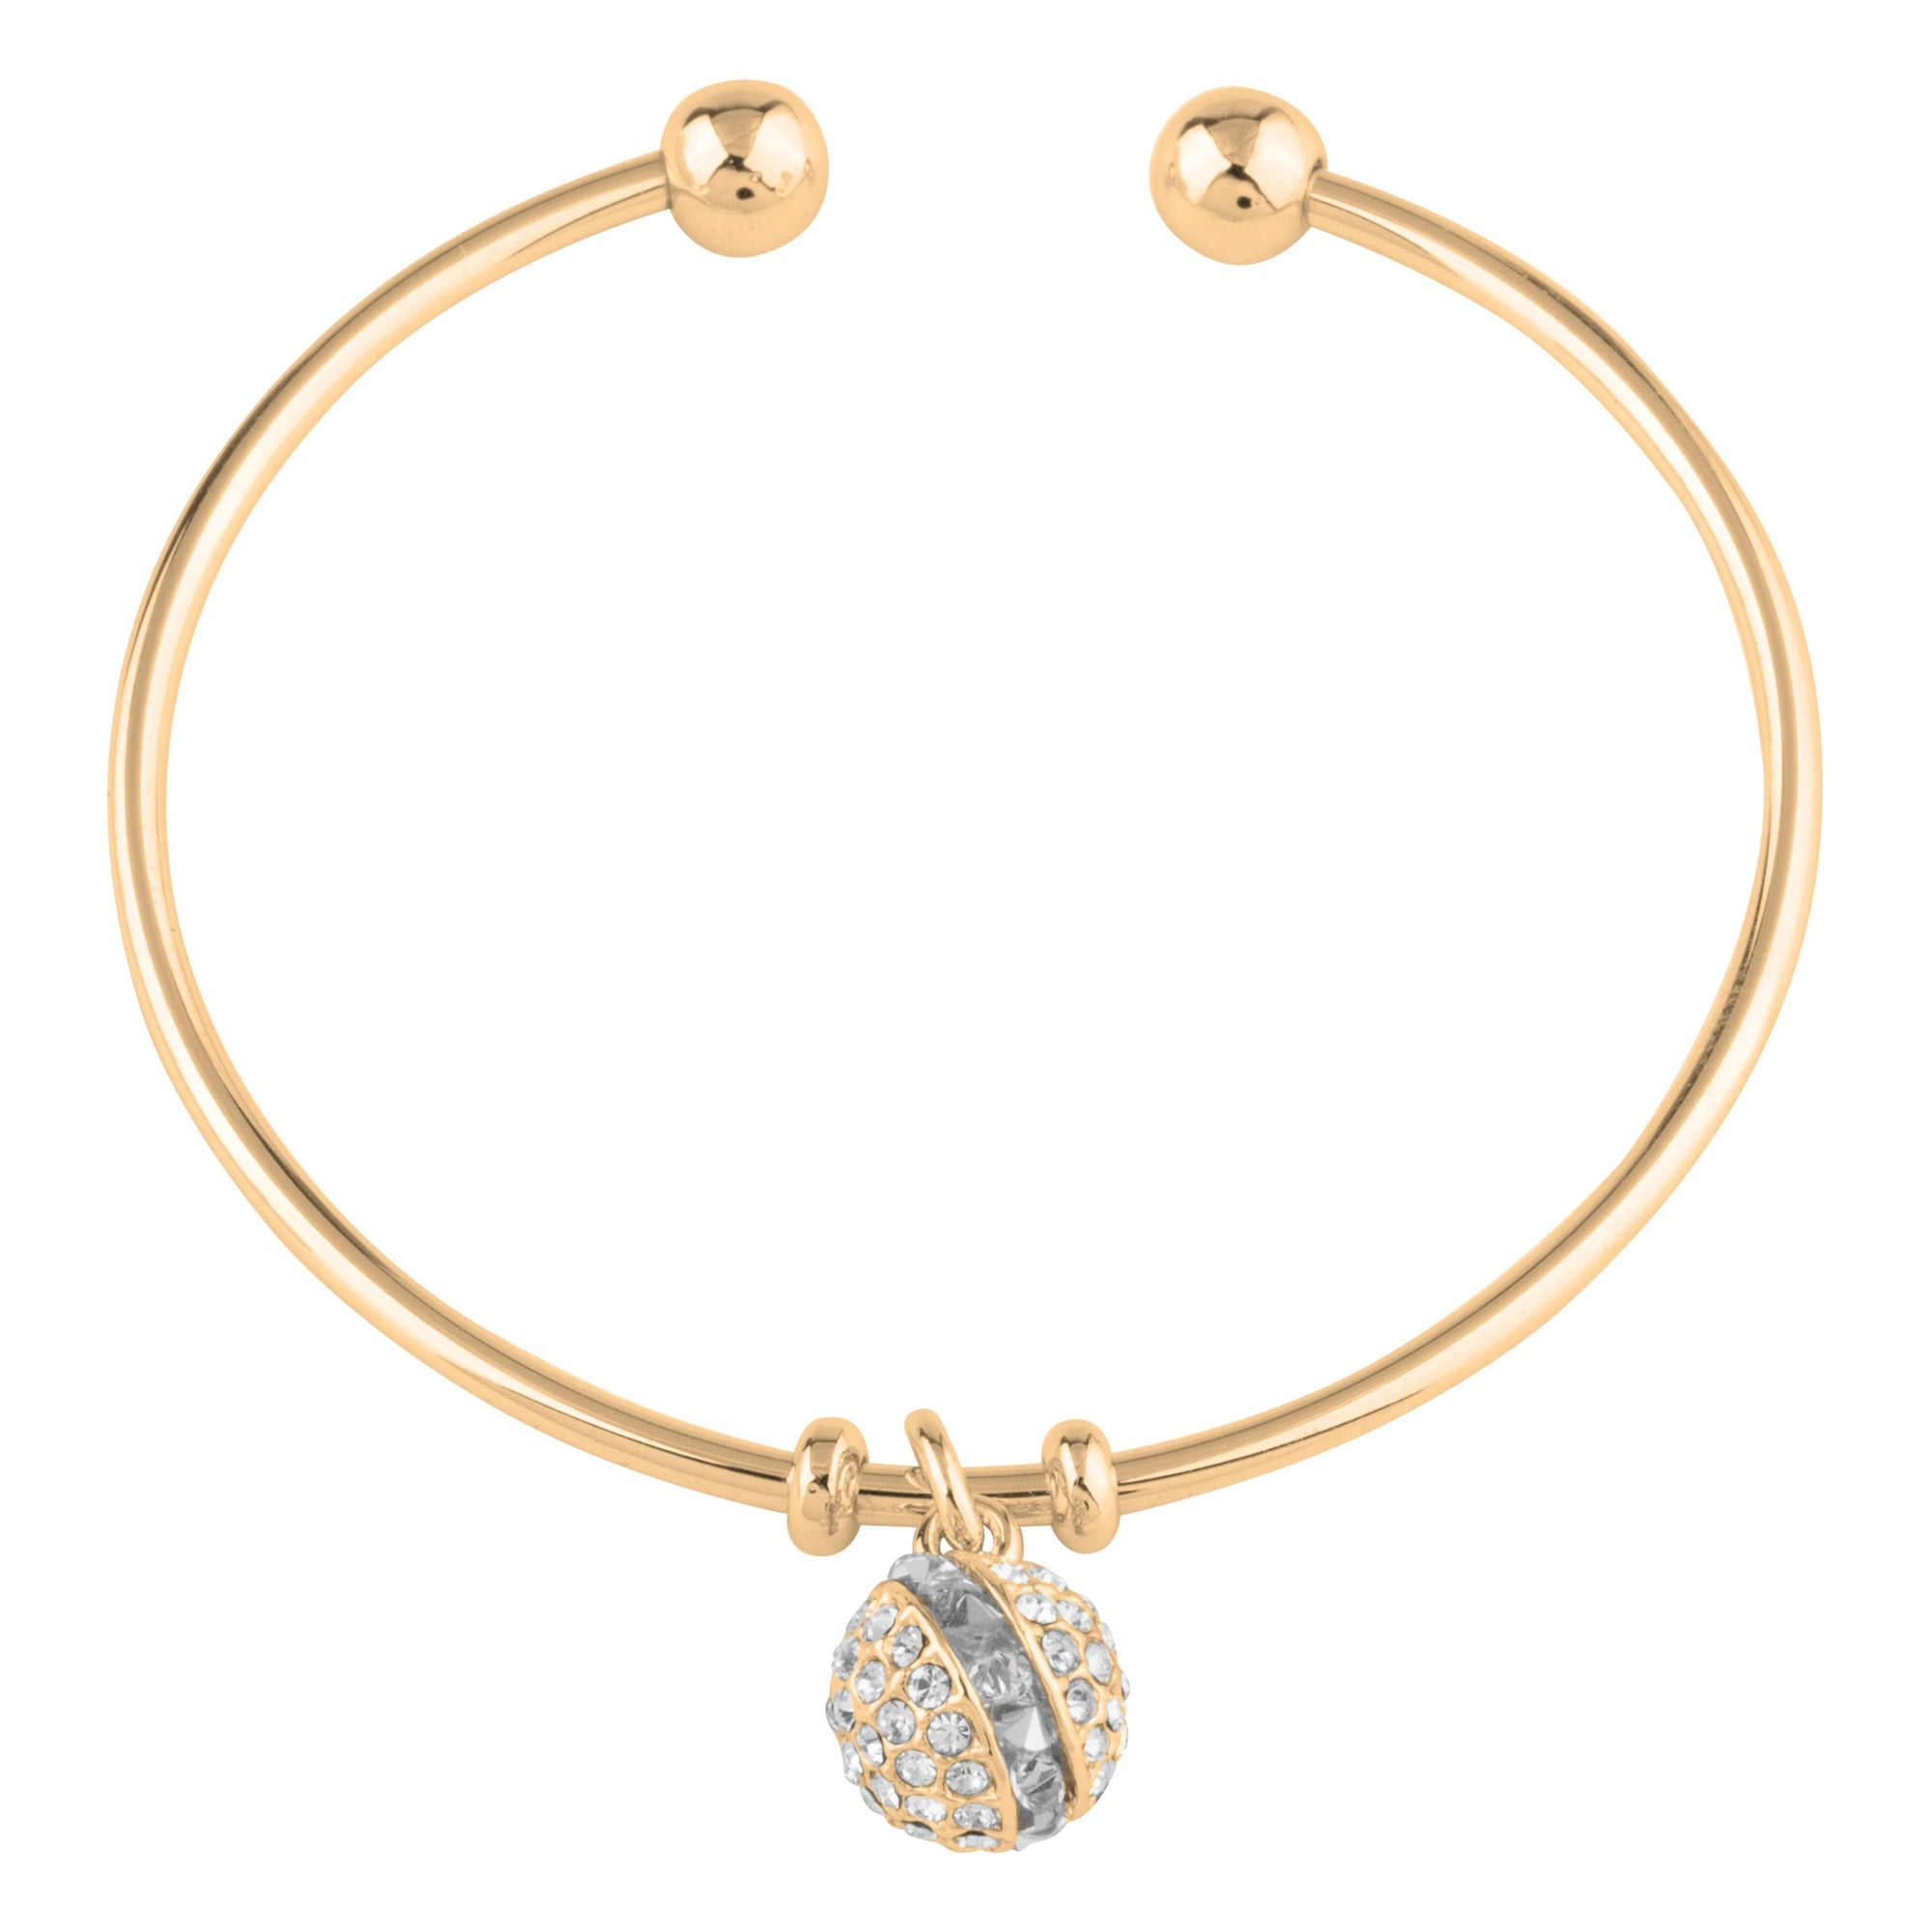 ORION BANGLE BRACELET GOLD CAL Constellation FOREVER